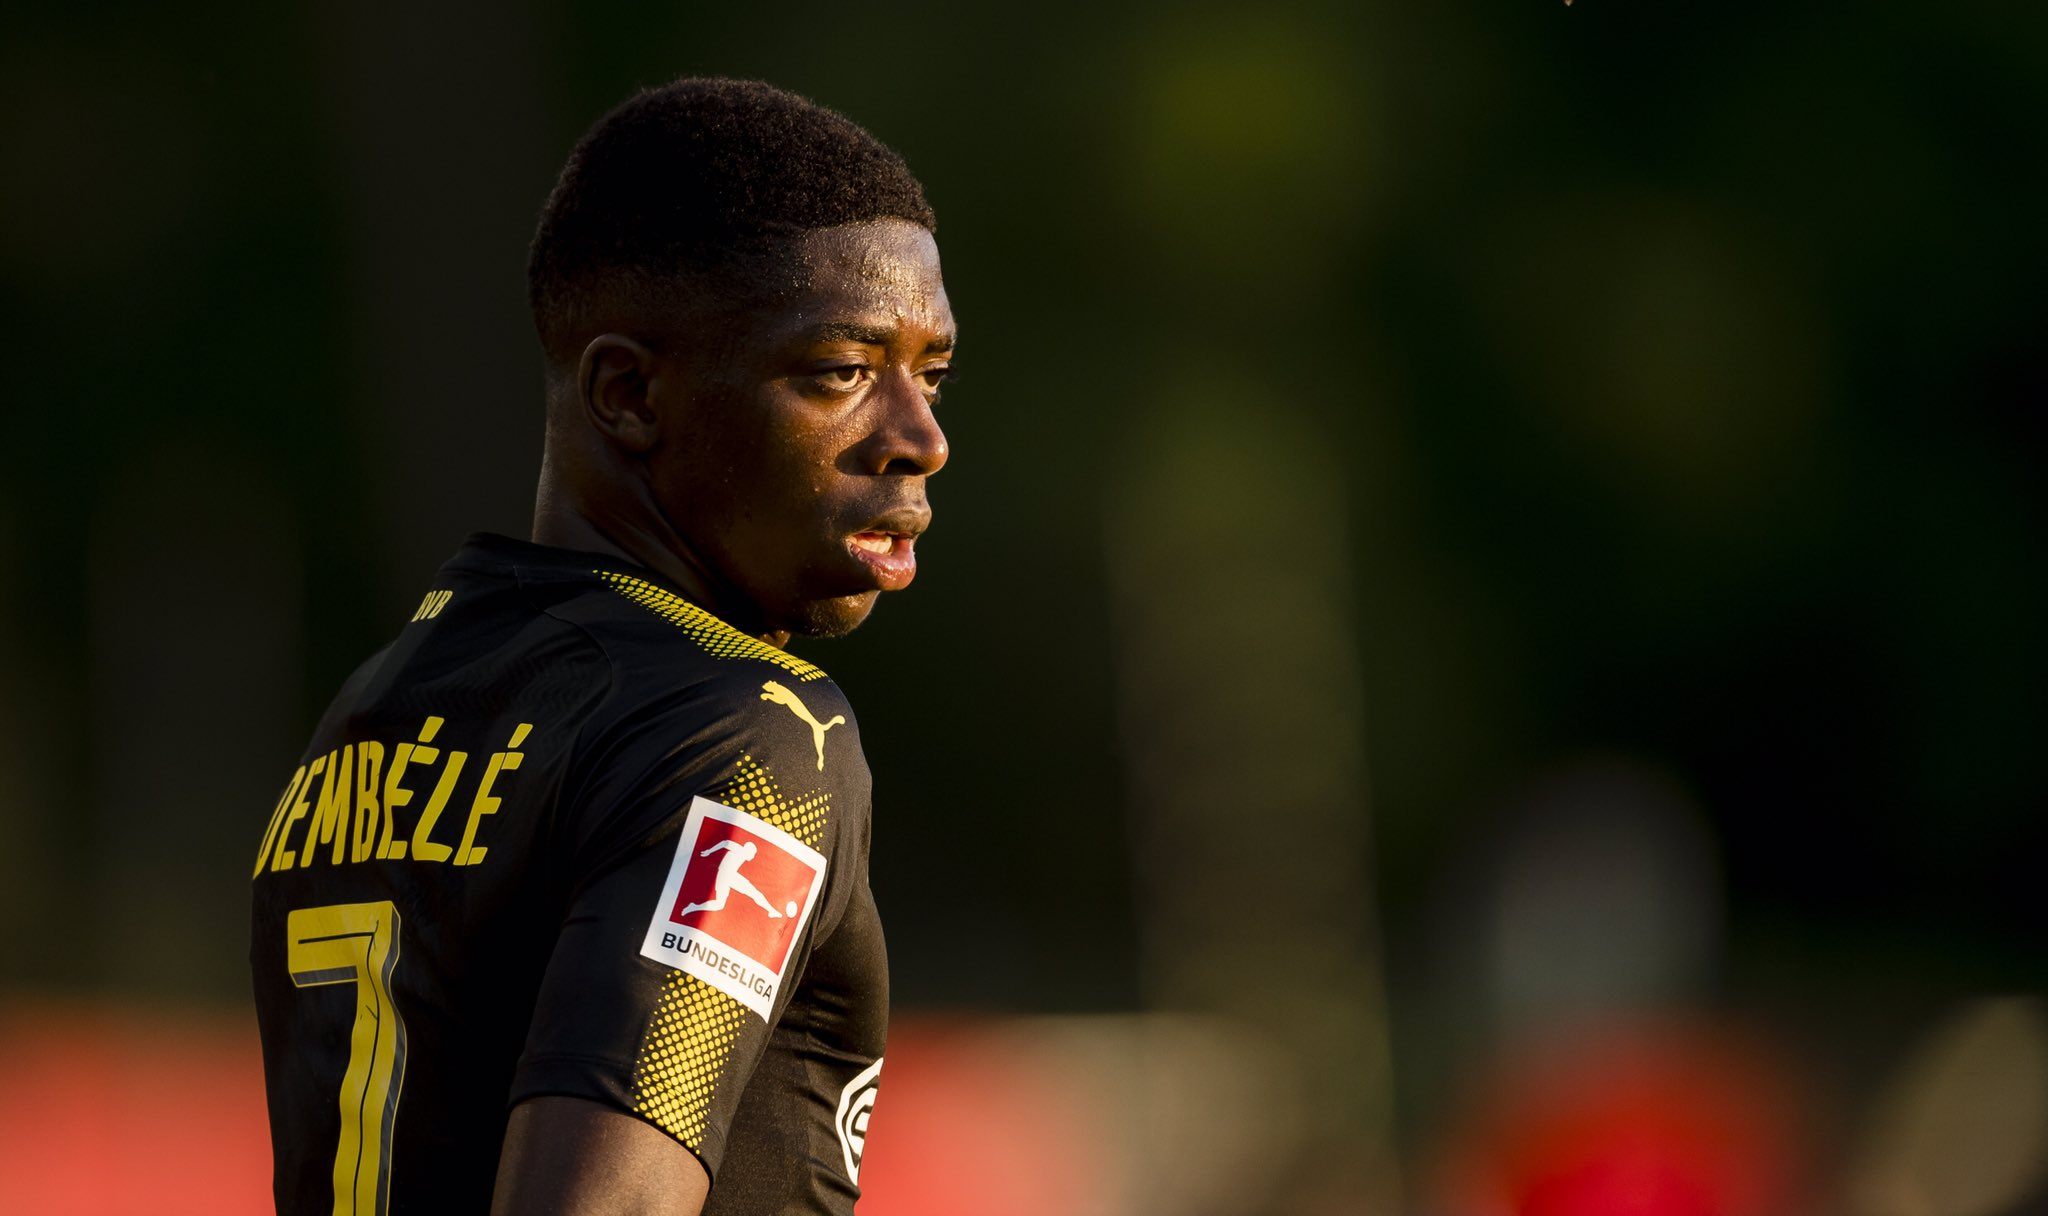 Stellungnahme: @Dembouz bleibt suspendiert. https://t.co/C3G9jg8WKM https://t.co/1YOyjSZ8mh